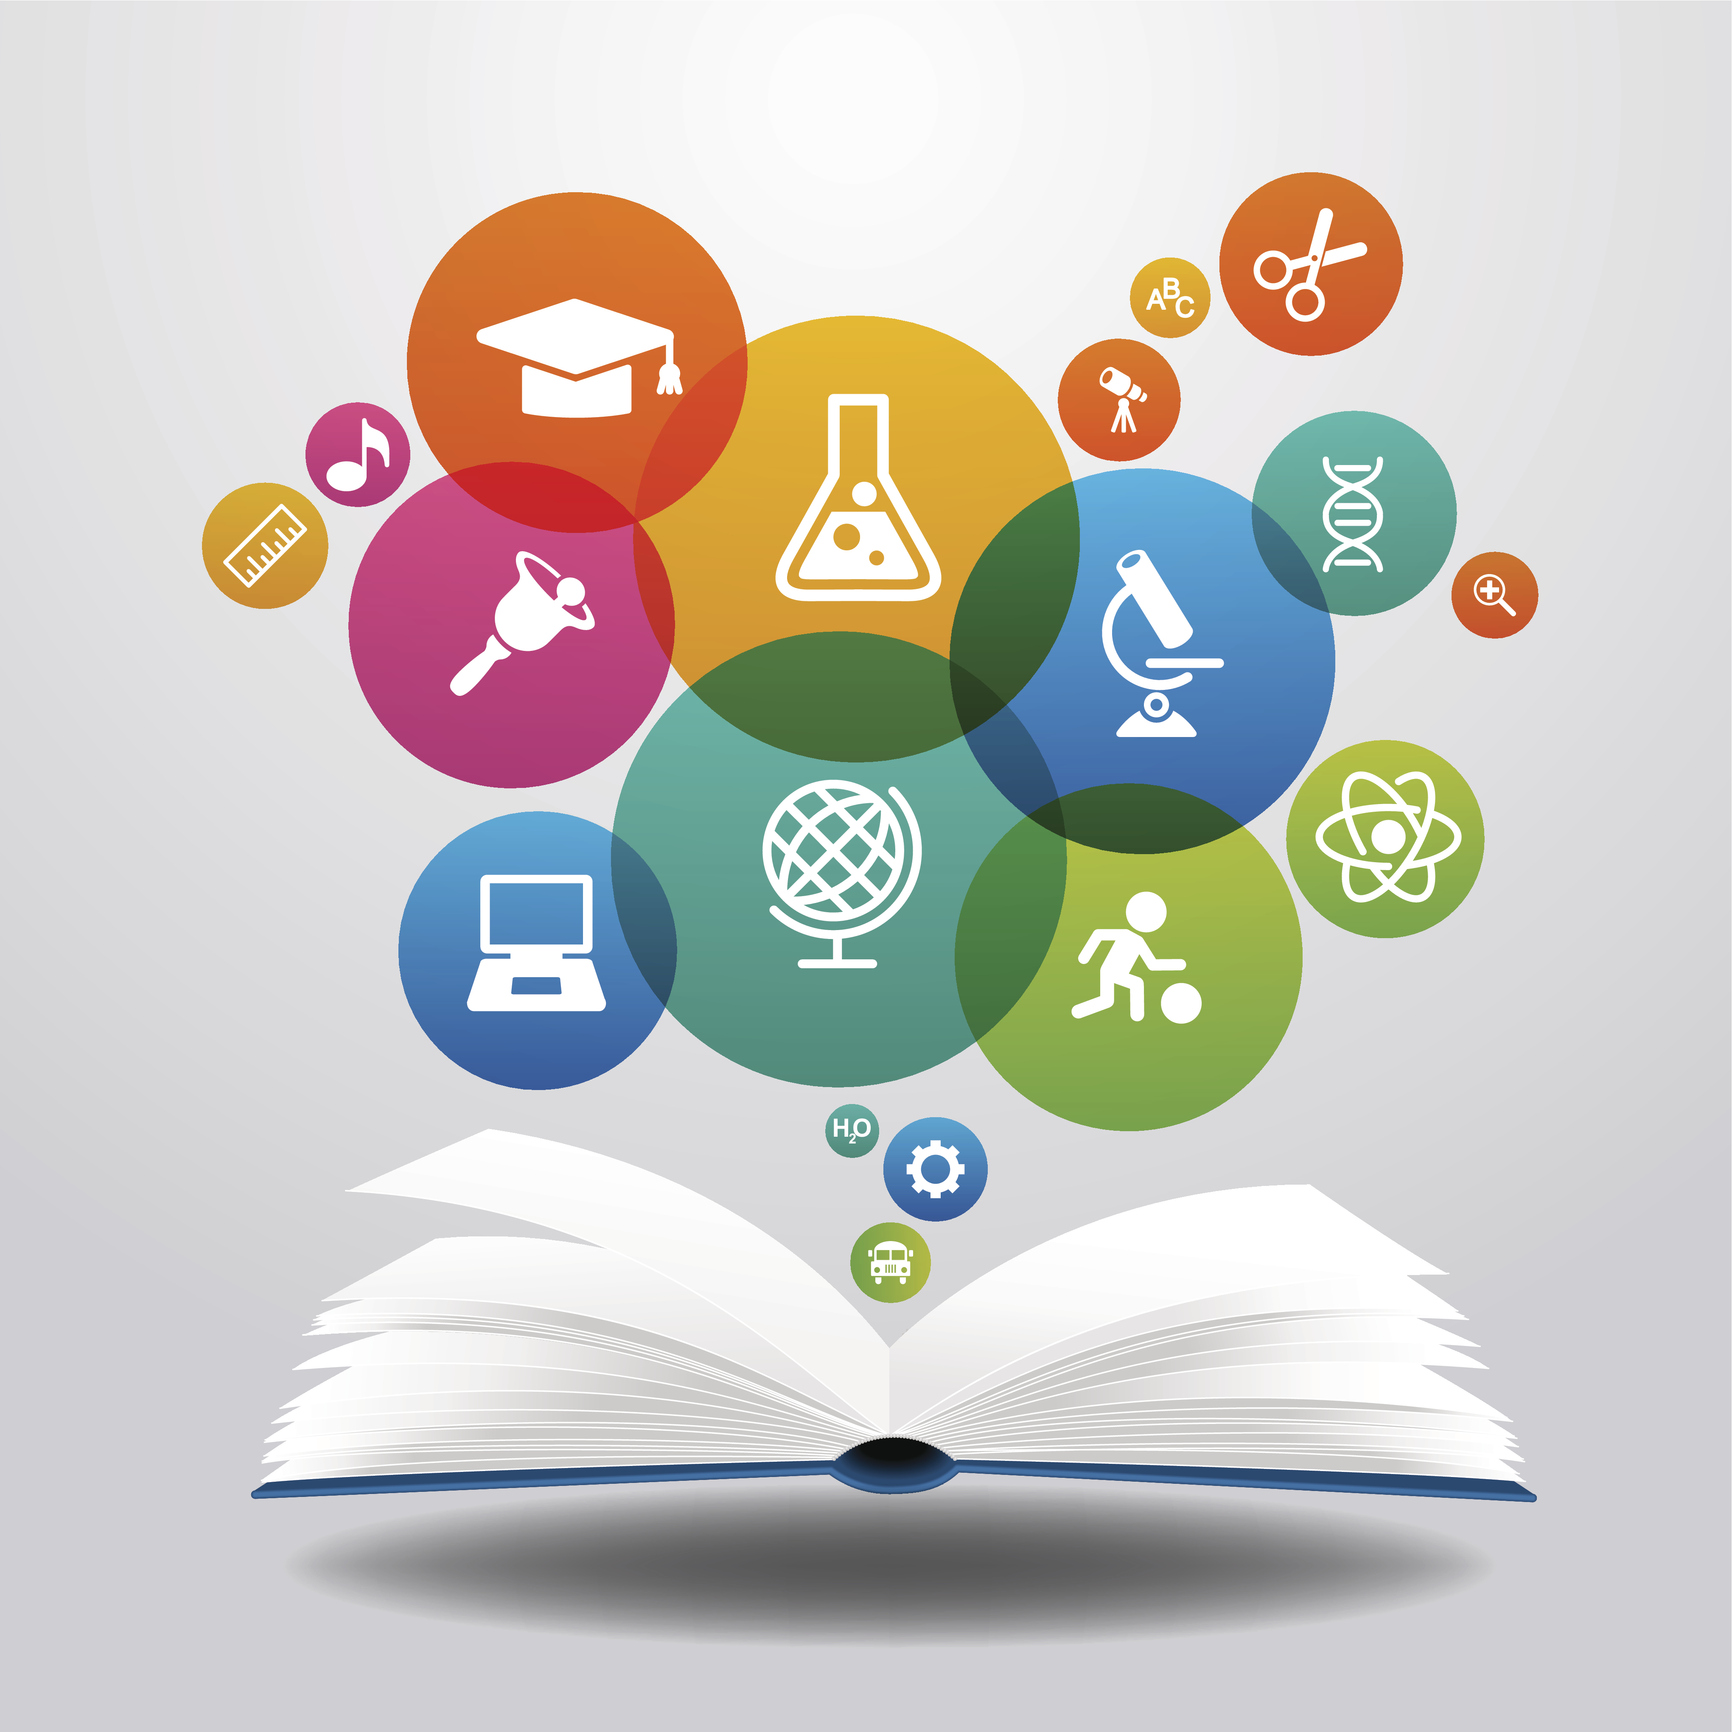 Broadening education investments to full-stack solutions sciencebook